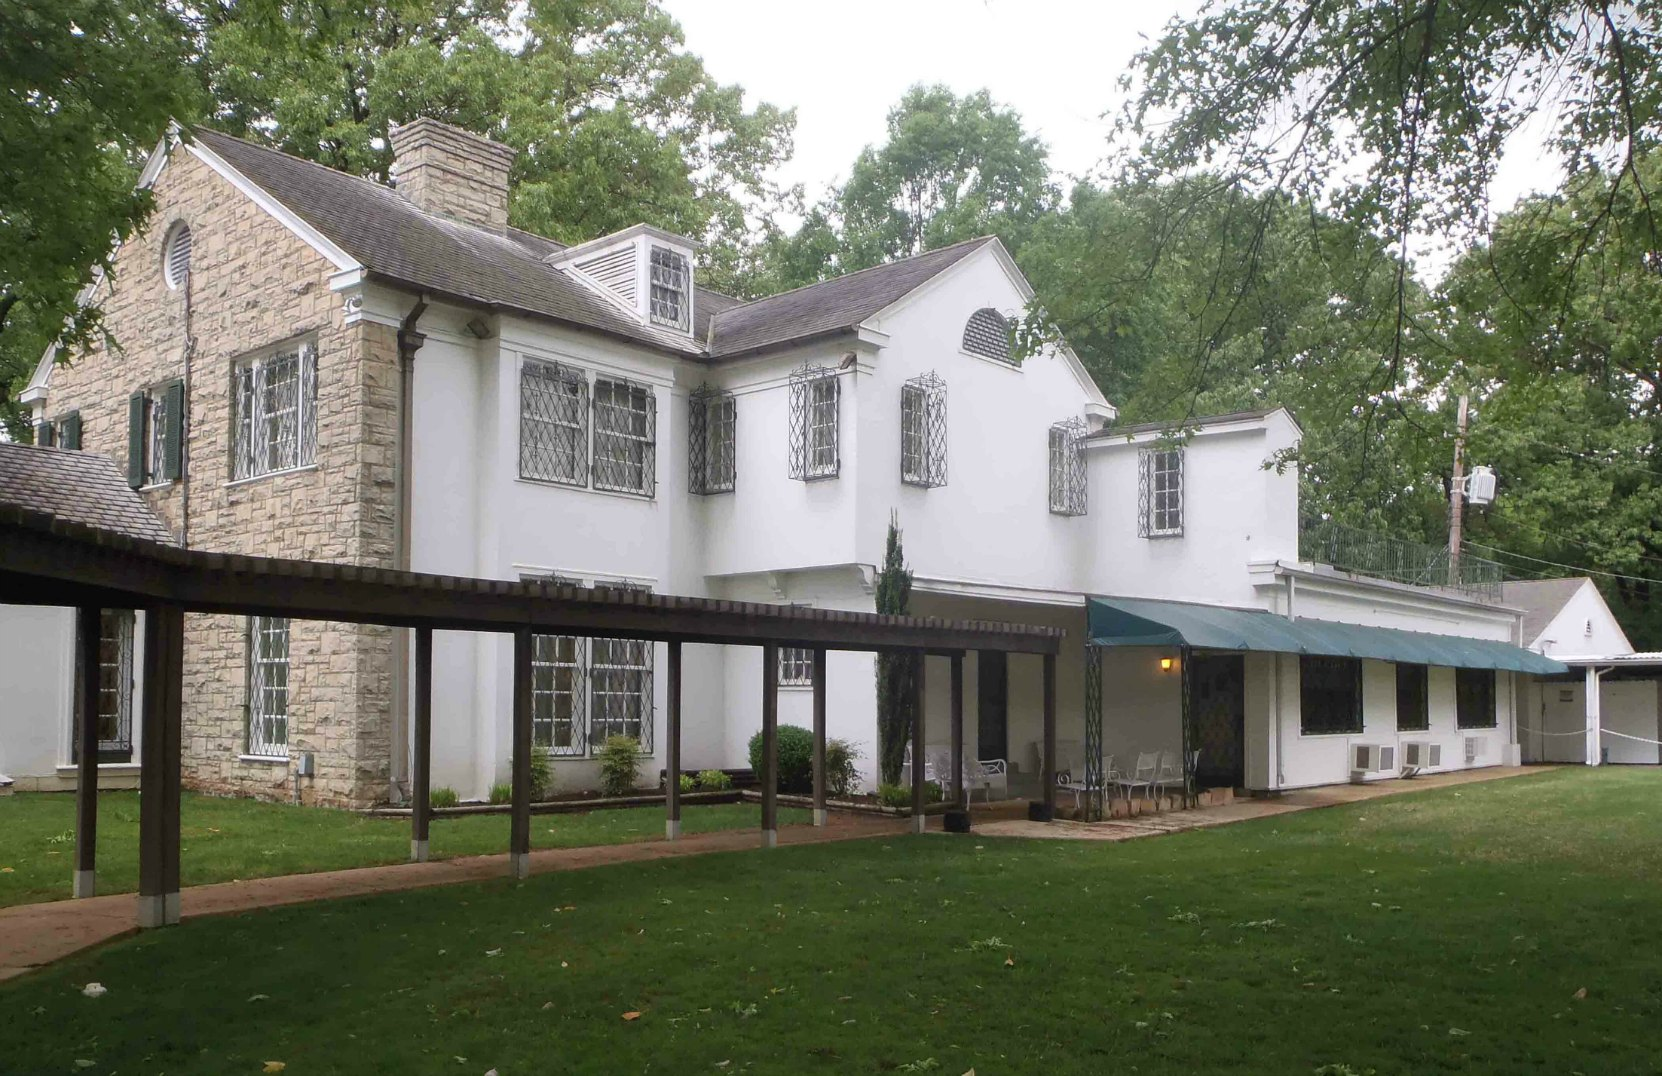 The rear of Elvis Presley's home at Graceland, Memphis, Tennessee